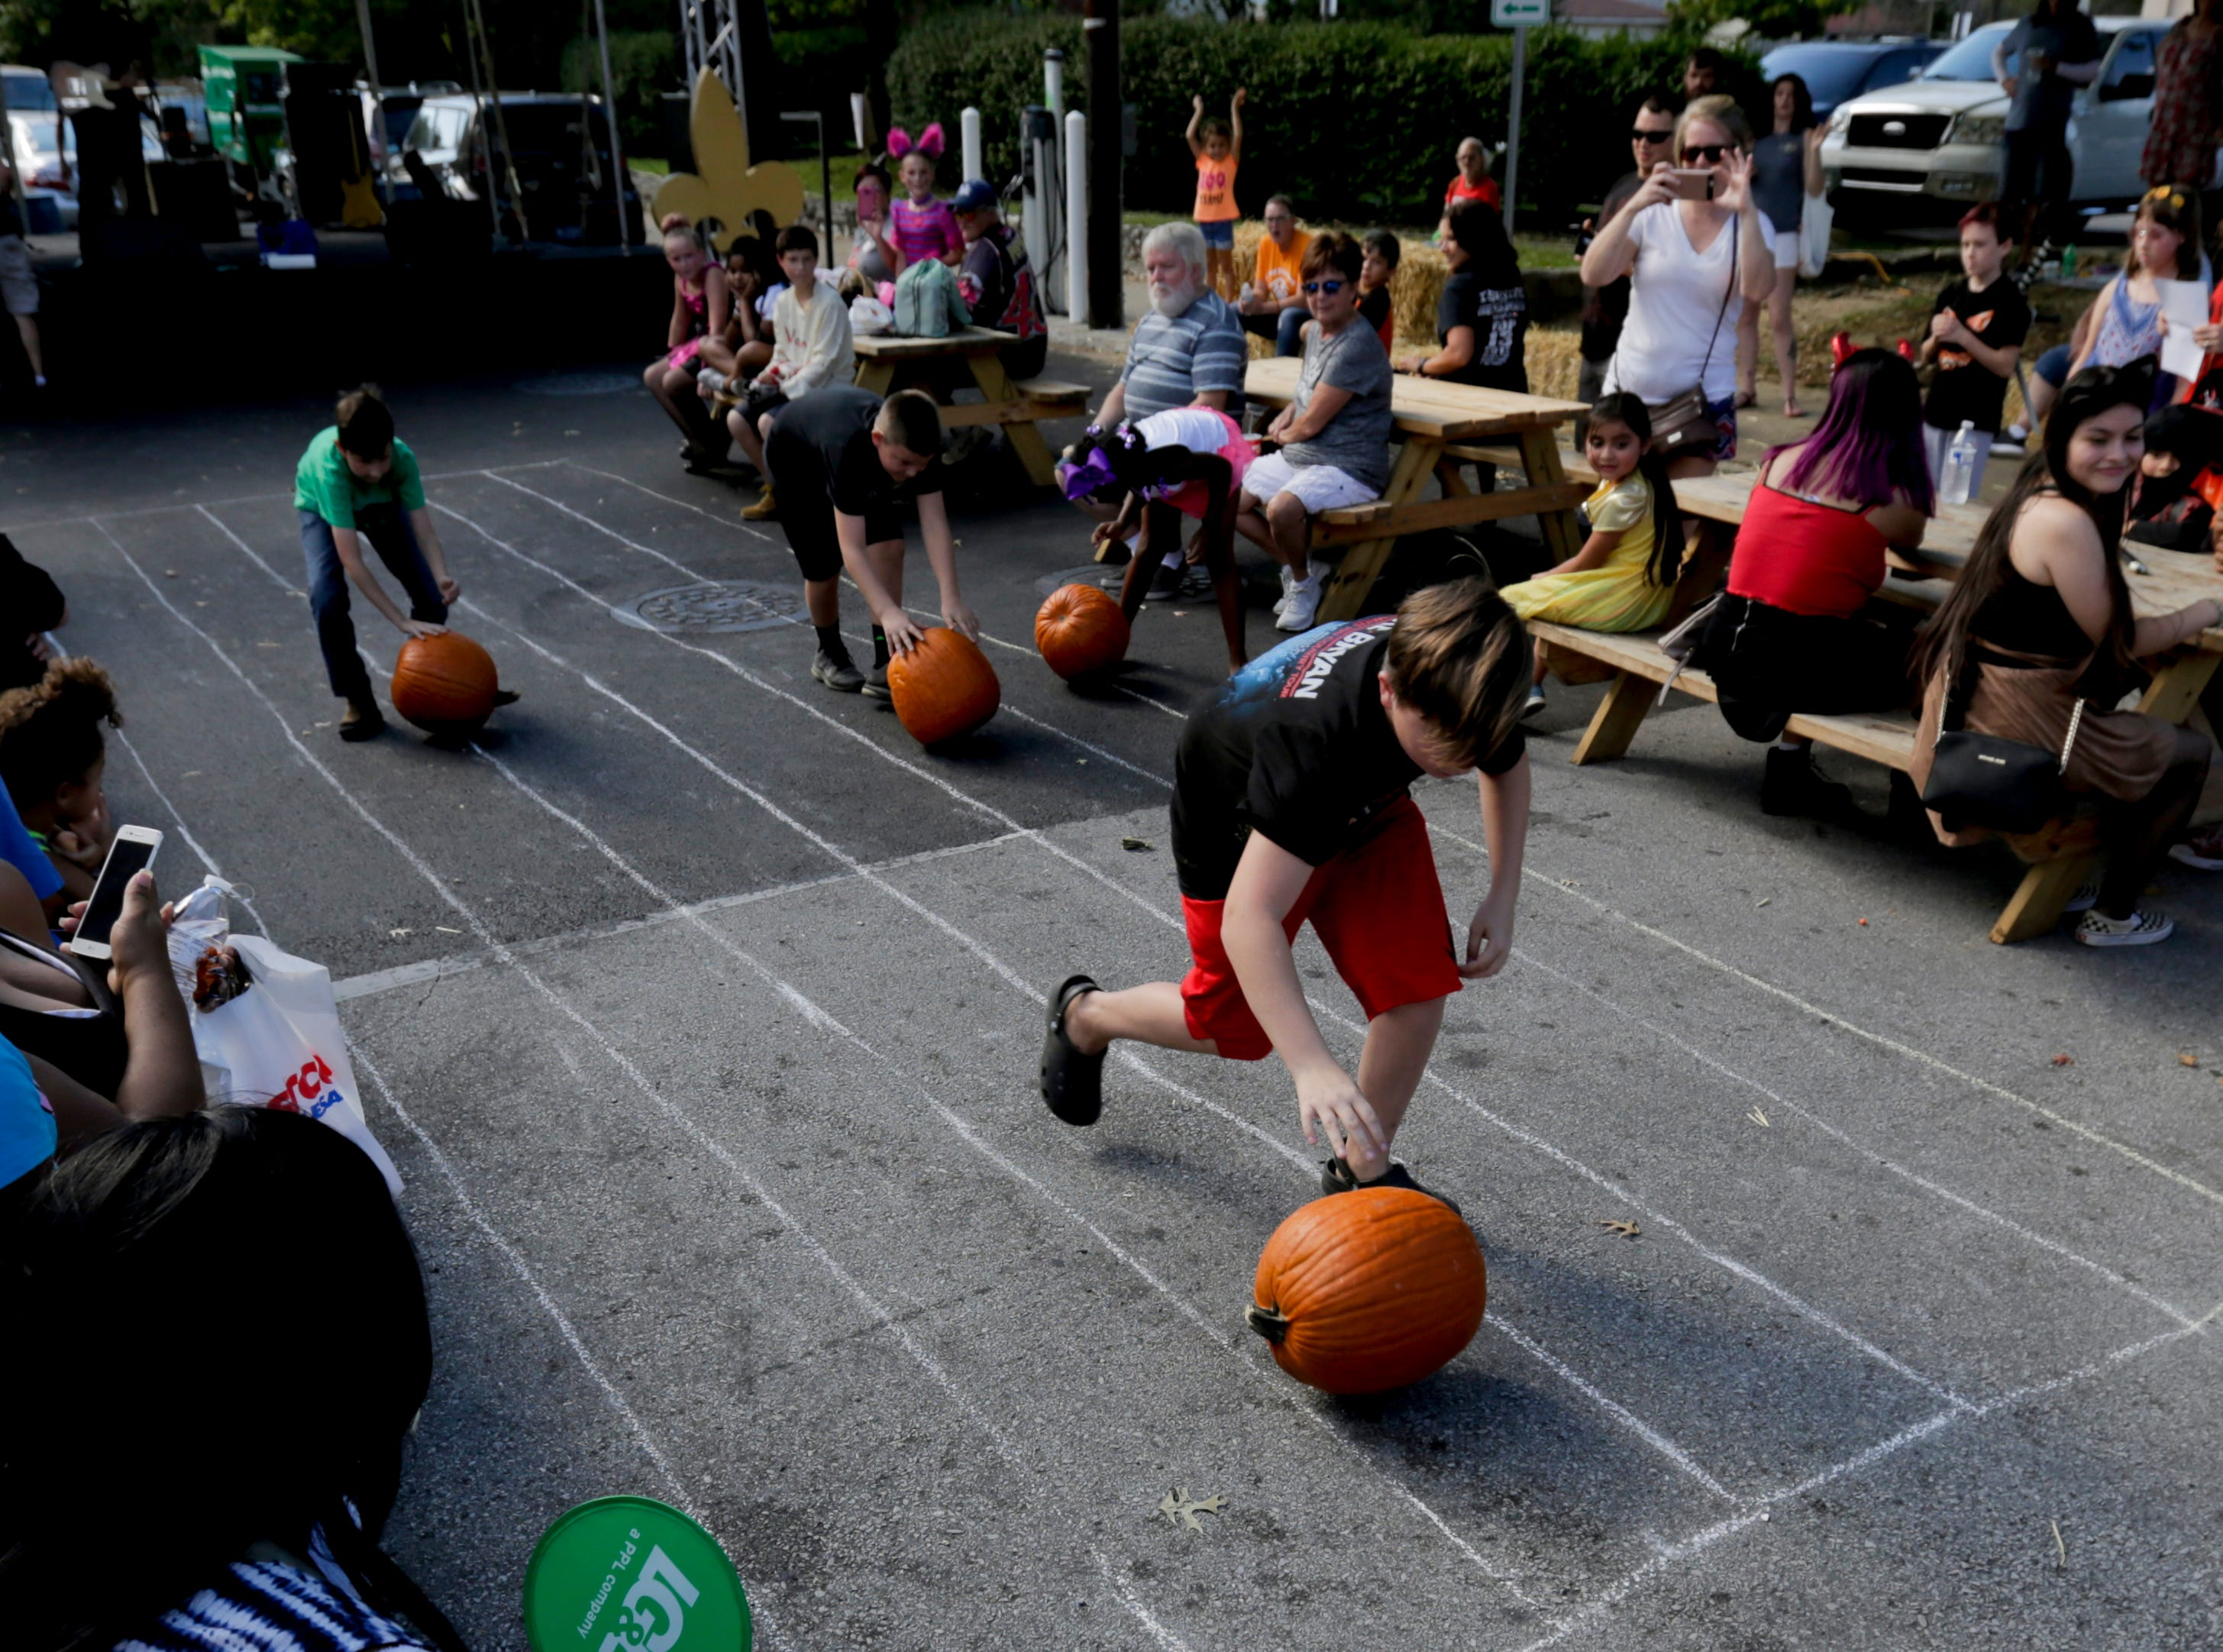 A pumpkin rolling contest at the 2018 Halloween Festival. Oct. 6, 2018